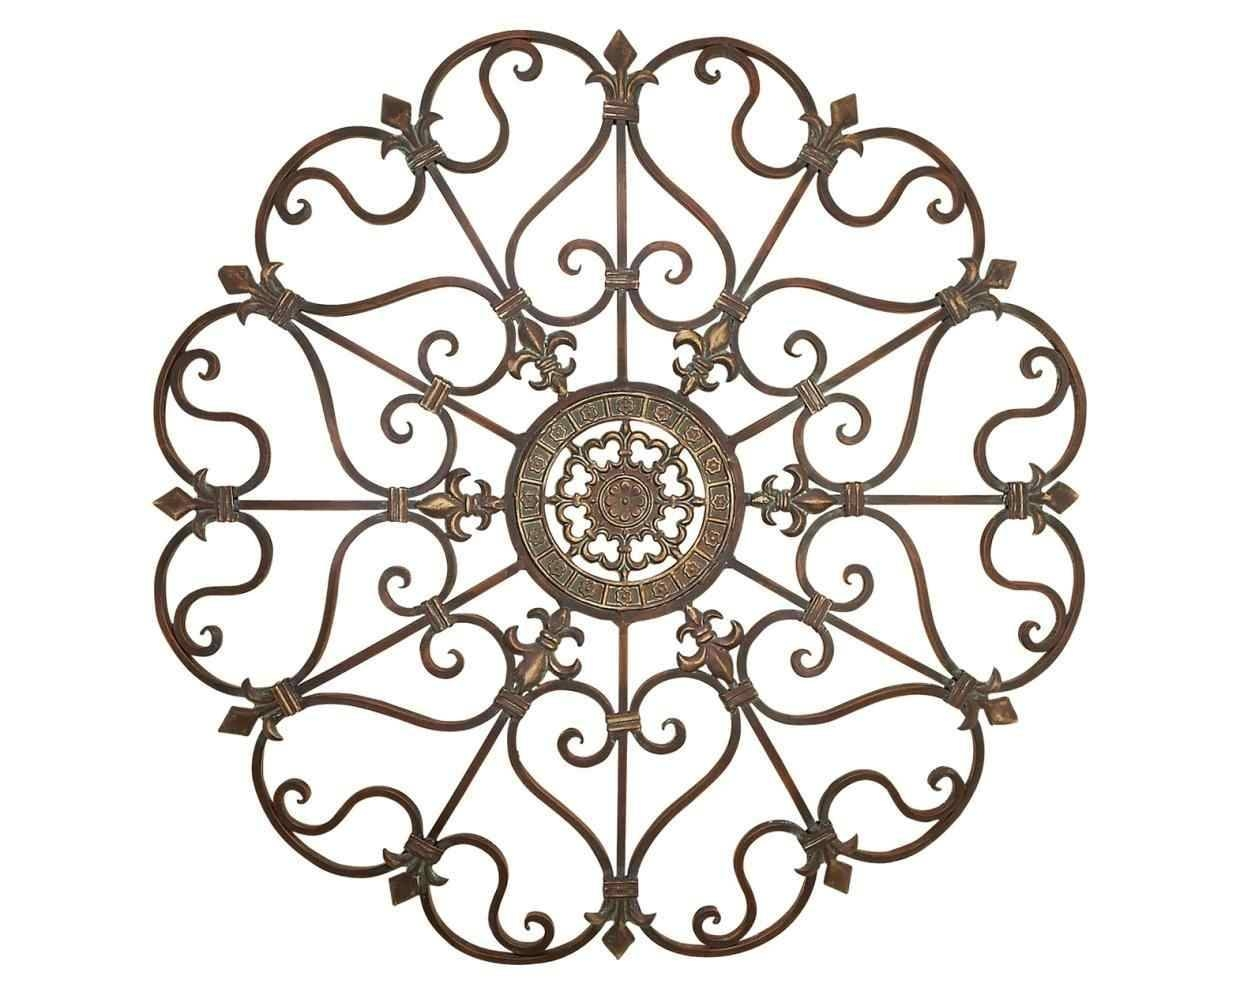 Swirl Metal Wall Art Home Interior Decor – Super Tech Intended For Most Up To Date Swirl Metal Wall Art (View 14 of 20)